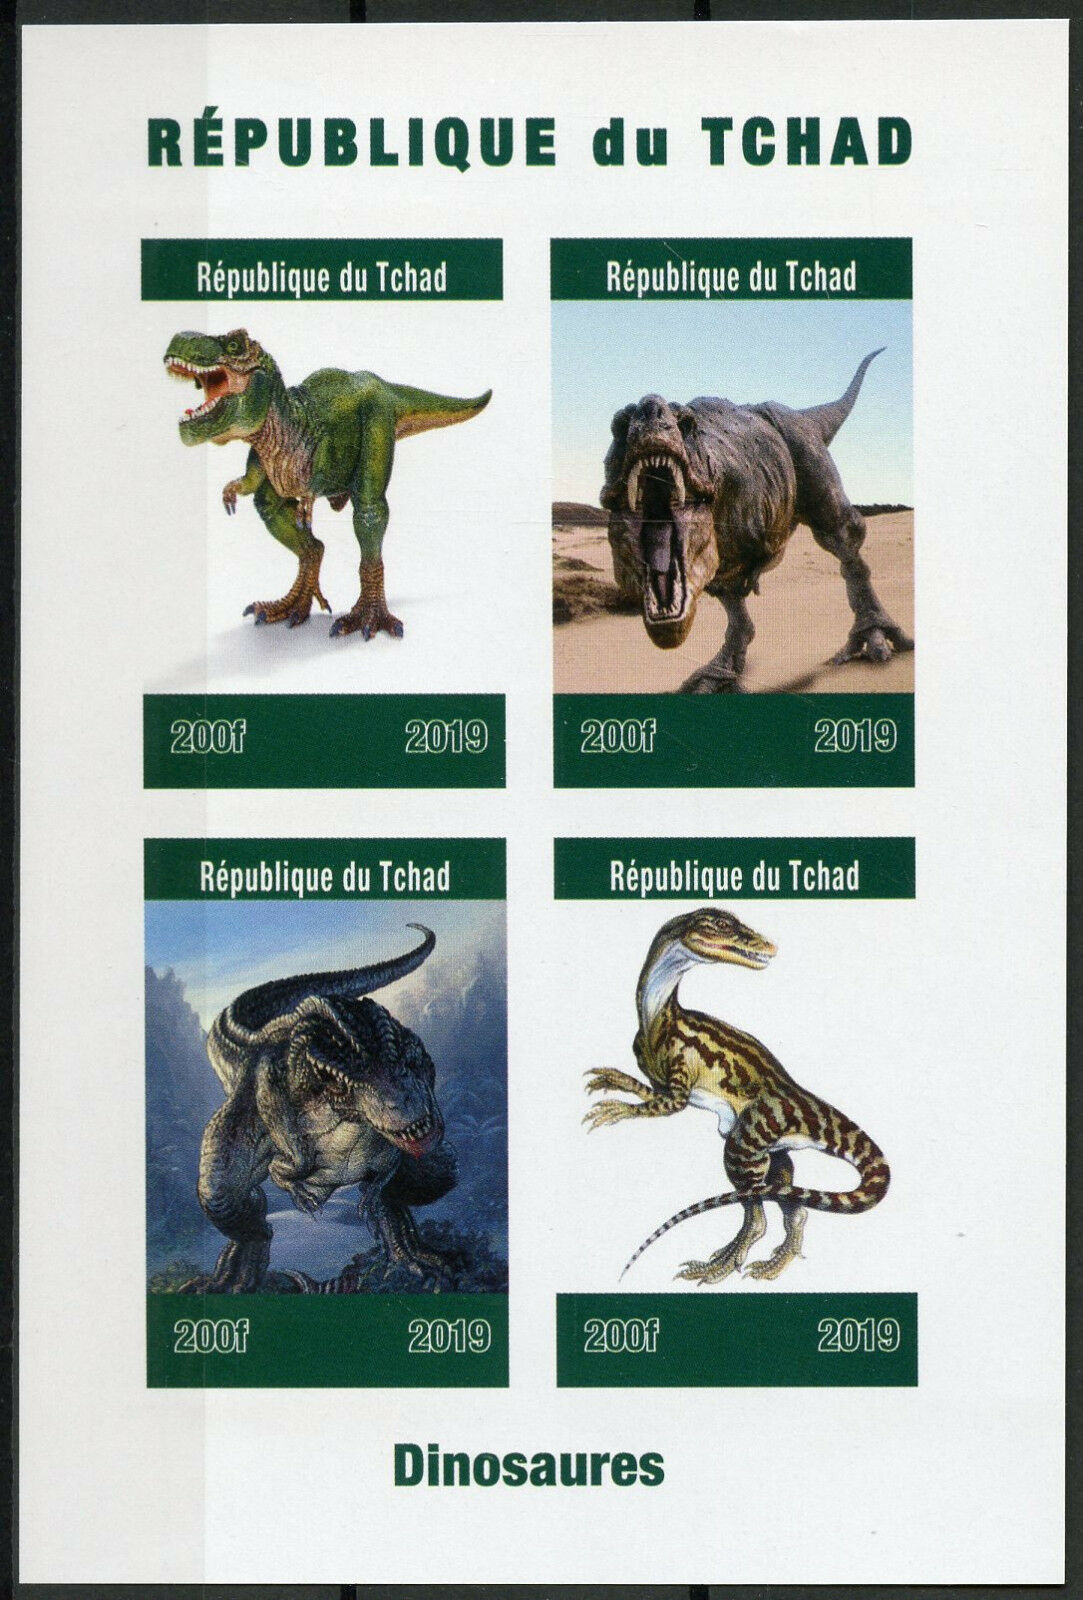 Republic of Chad - Dinosaurs (January 1, 2019) sheet of 4, imperforate